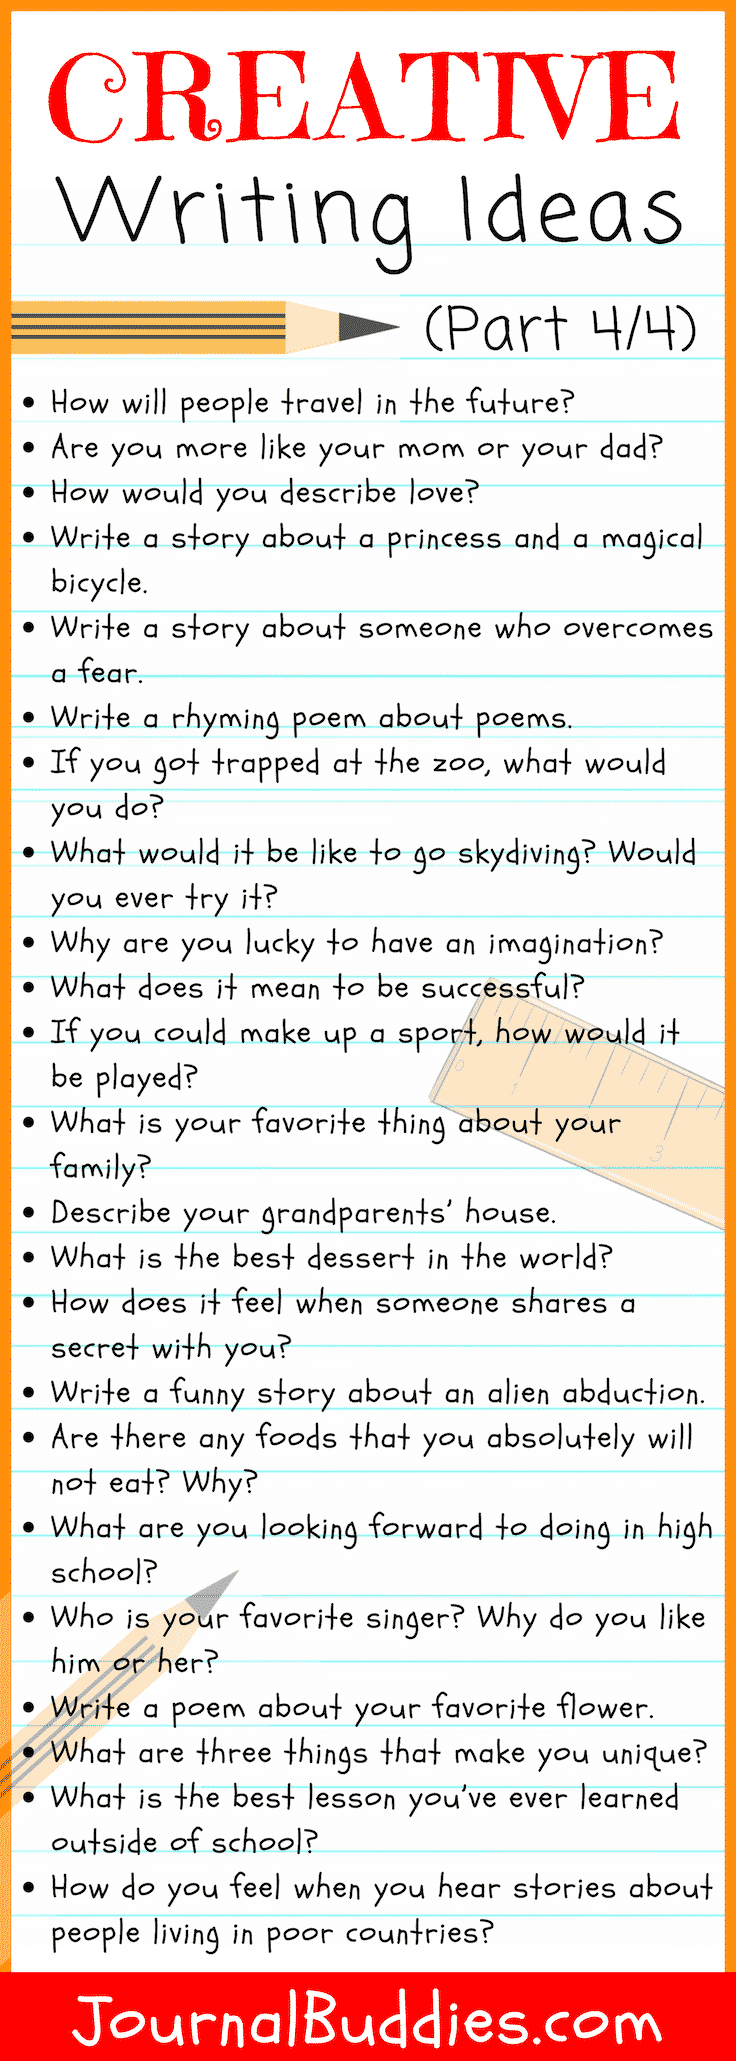 With this list of fun, playful, and creative writing prompts to spark the imagination and get the creative juices flowing, writers of all ages will be able to refine and deepen their creative writing skill and ability in no time.